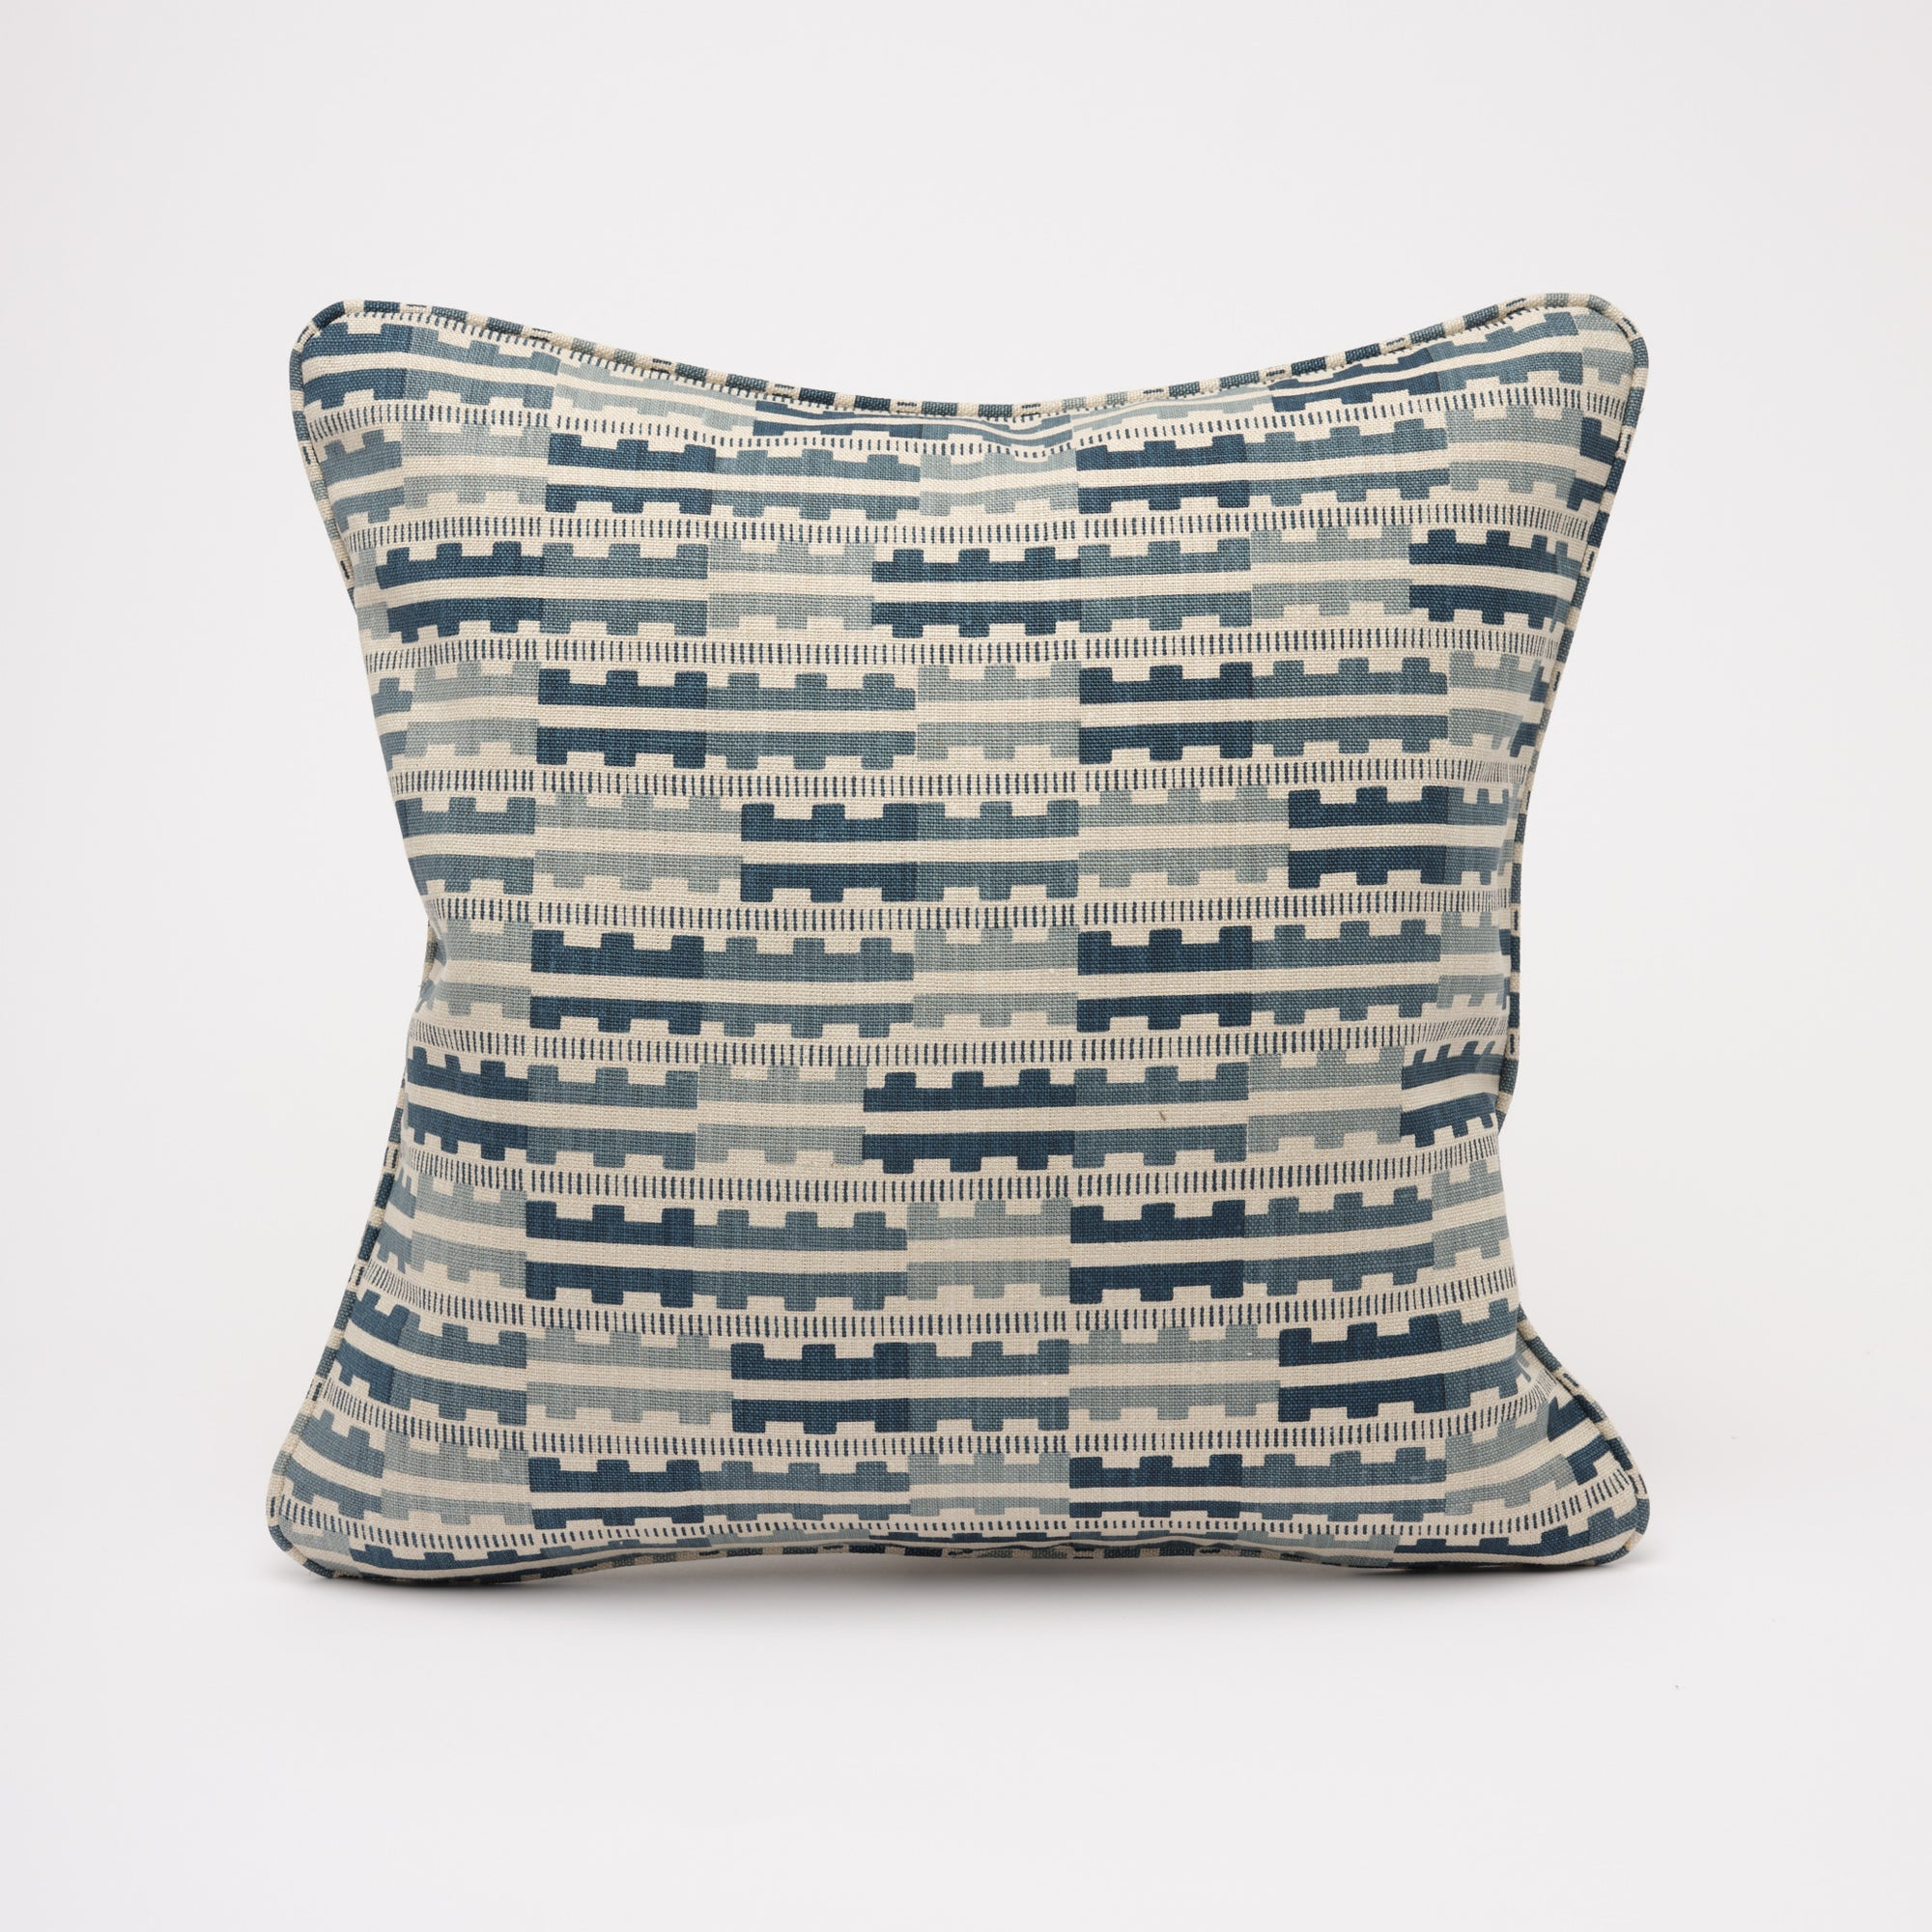 MARIANNE CUSHION - INDIGO NATURAL